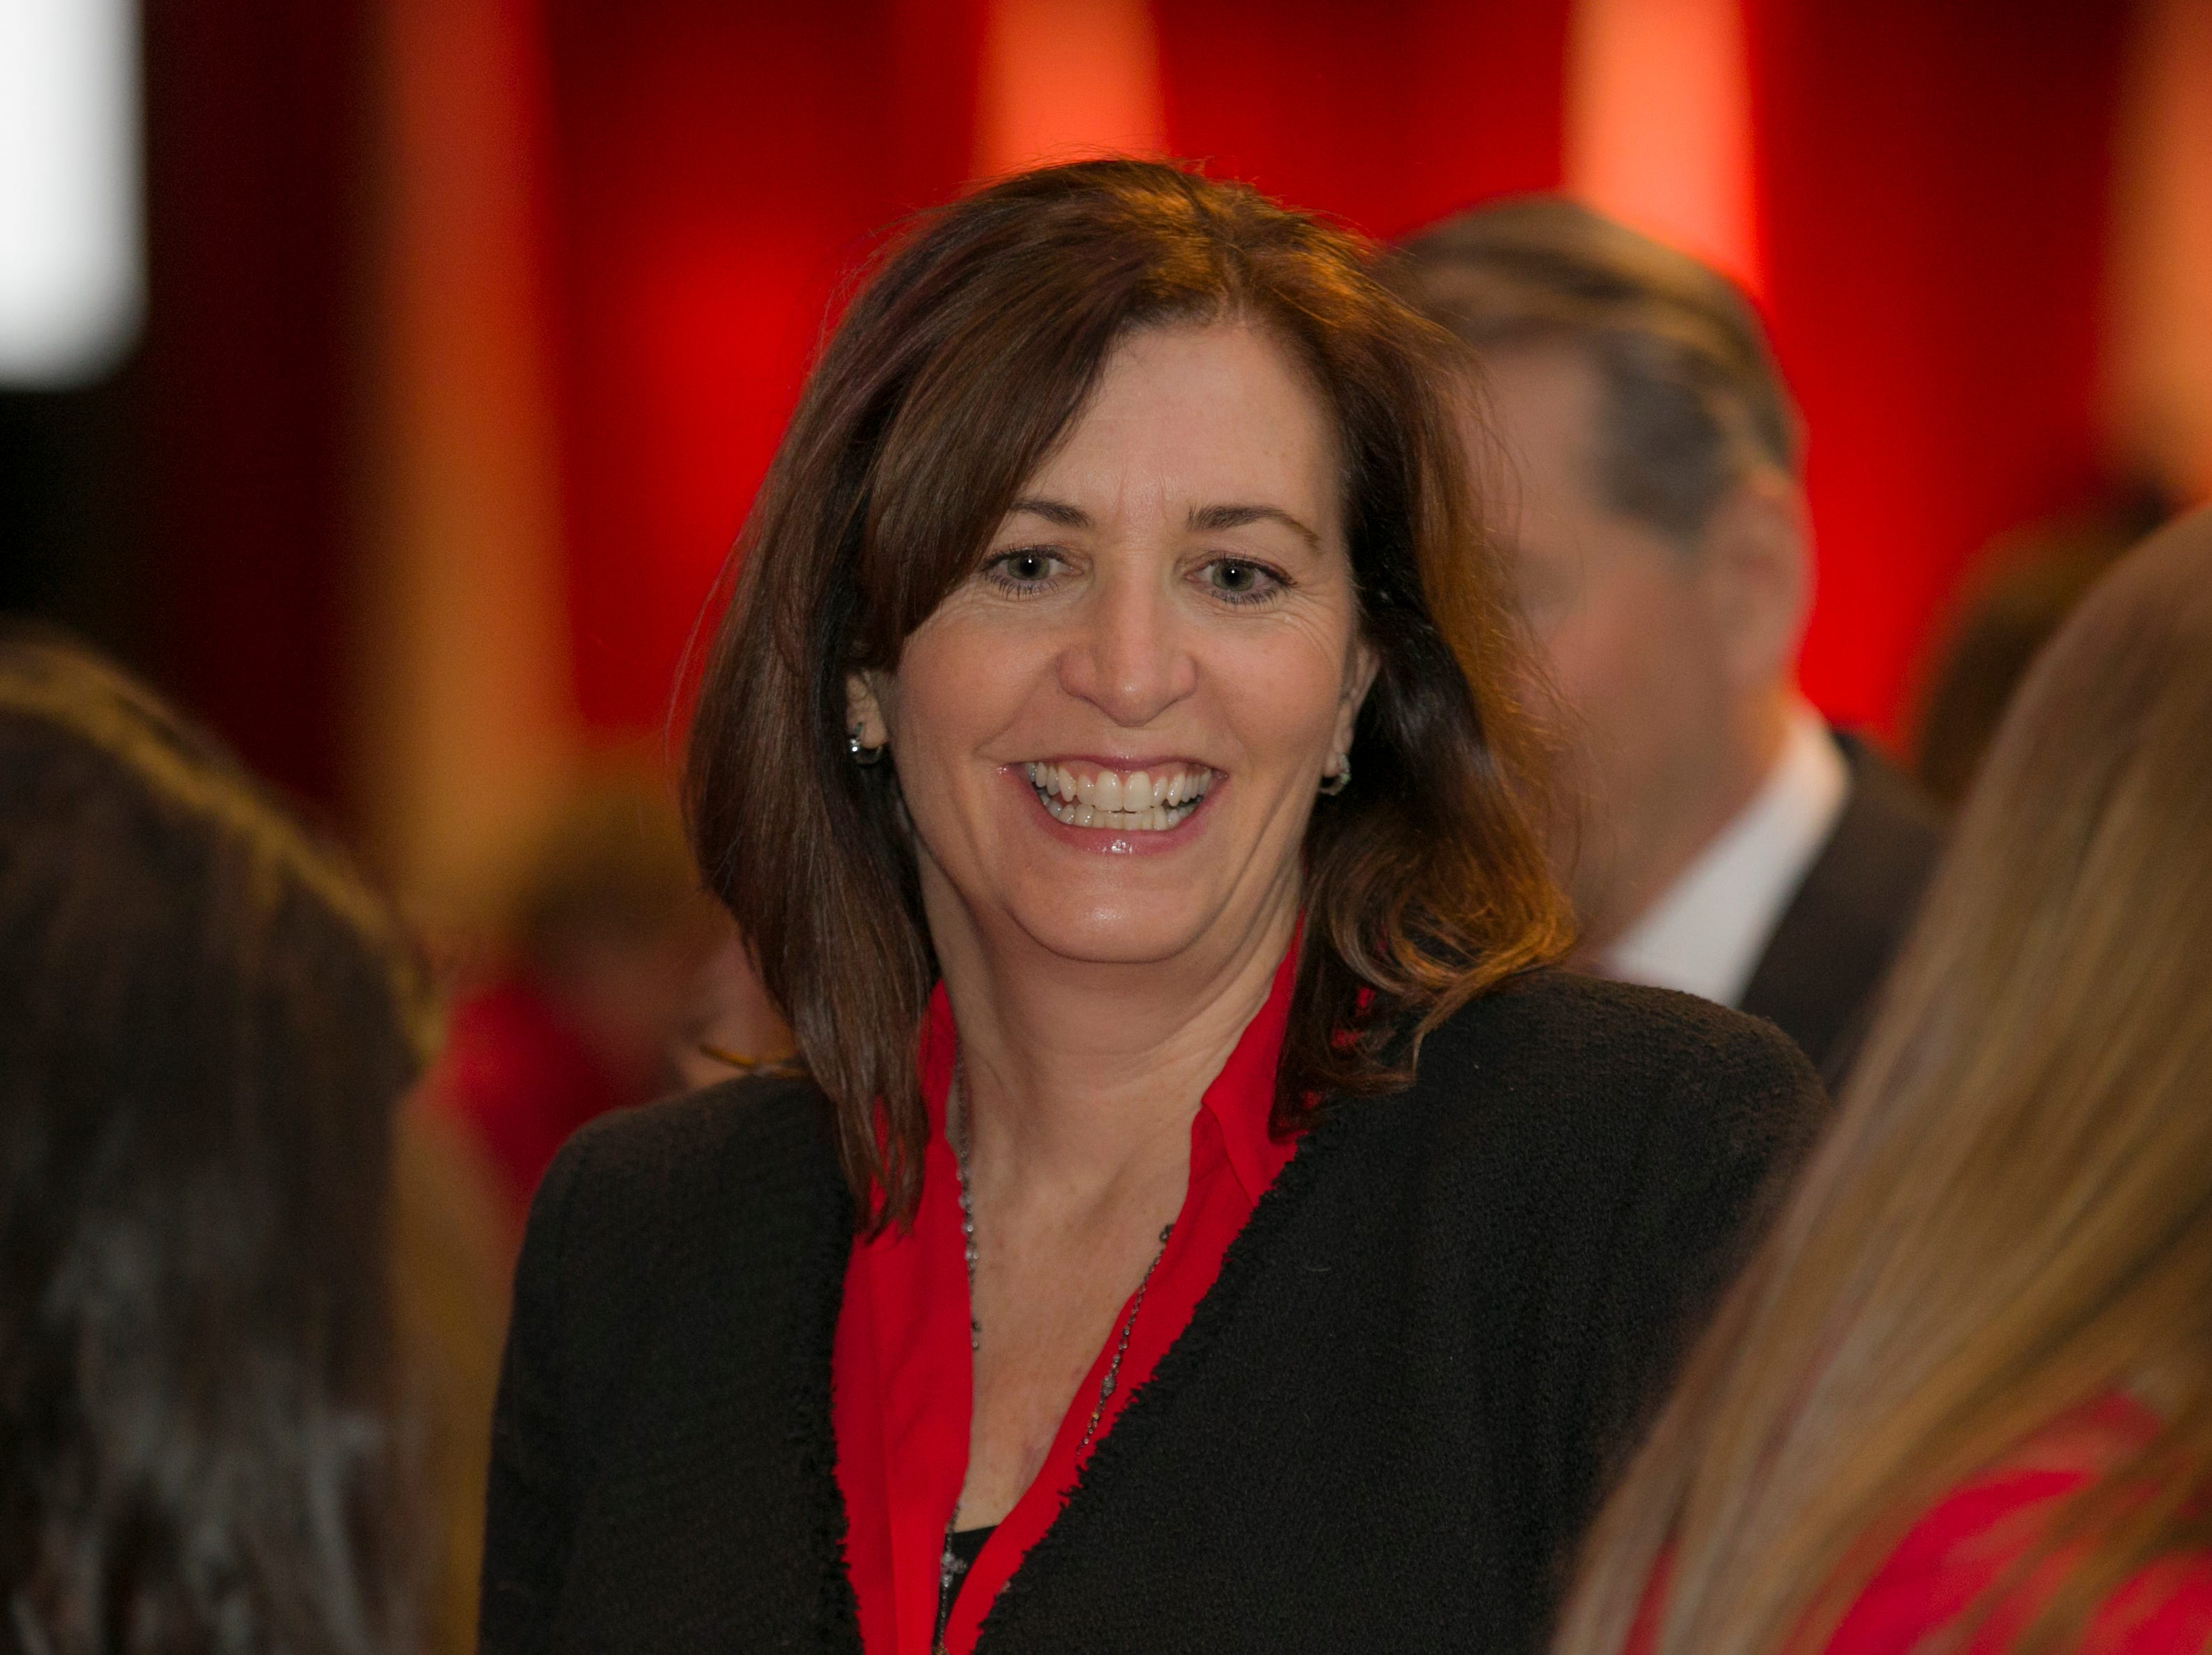 A photograph taken during the 15th Annual Go Red for Women Luncheon on Friday night,March 1, 2019 held at the downtown Reno Ballroom.